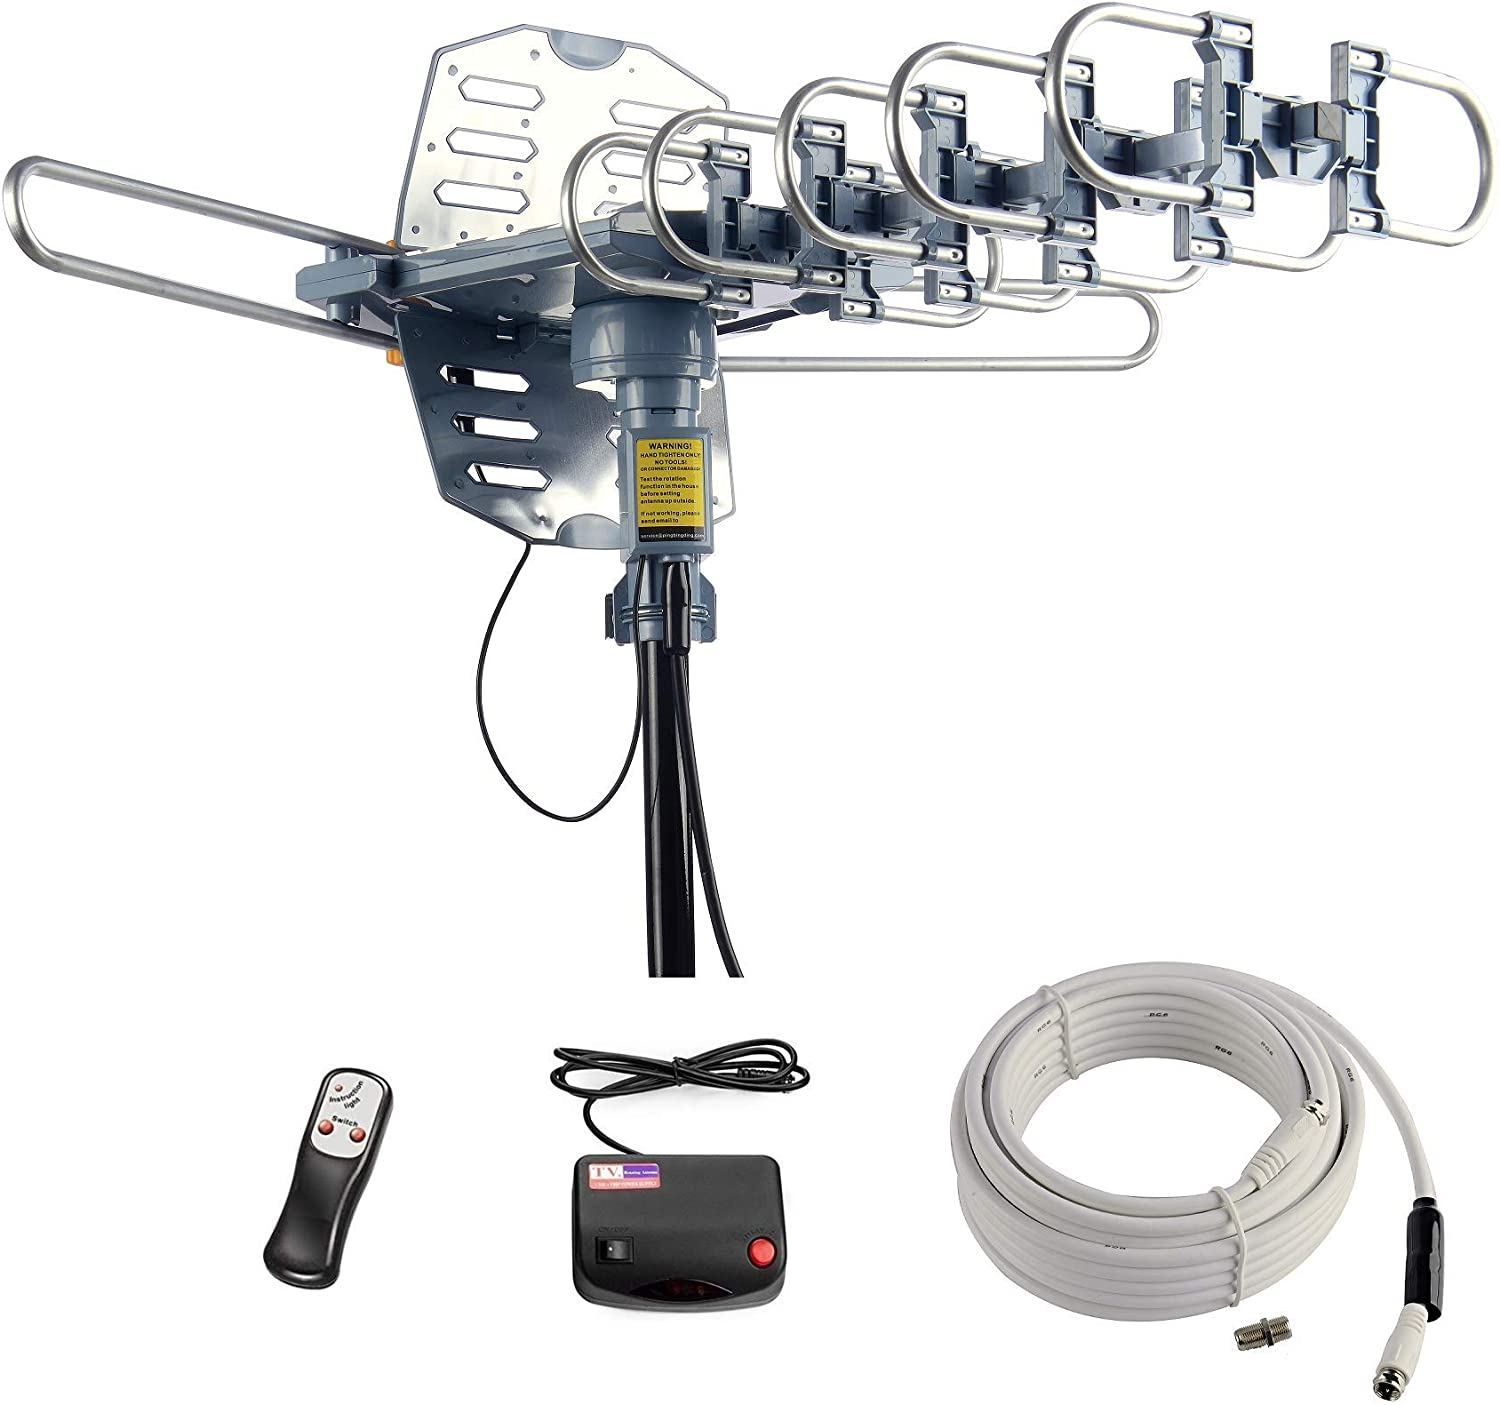 McDuory Digital Outdoor Antenna 2020 Updated Long Range 360 Degree Rotation VHF UHF HDTV Signal with Infrared Remote Controller for 2 TVs